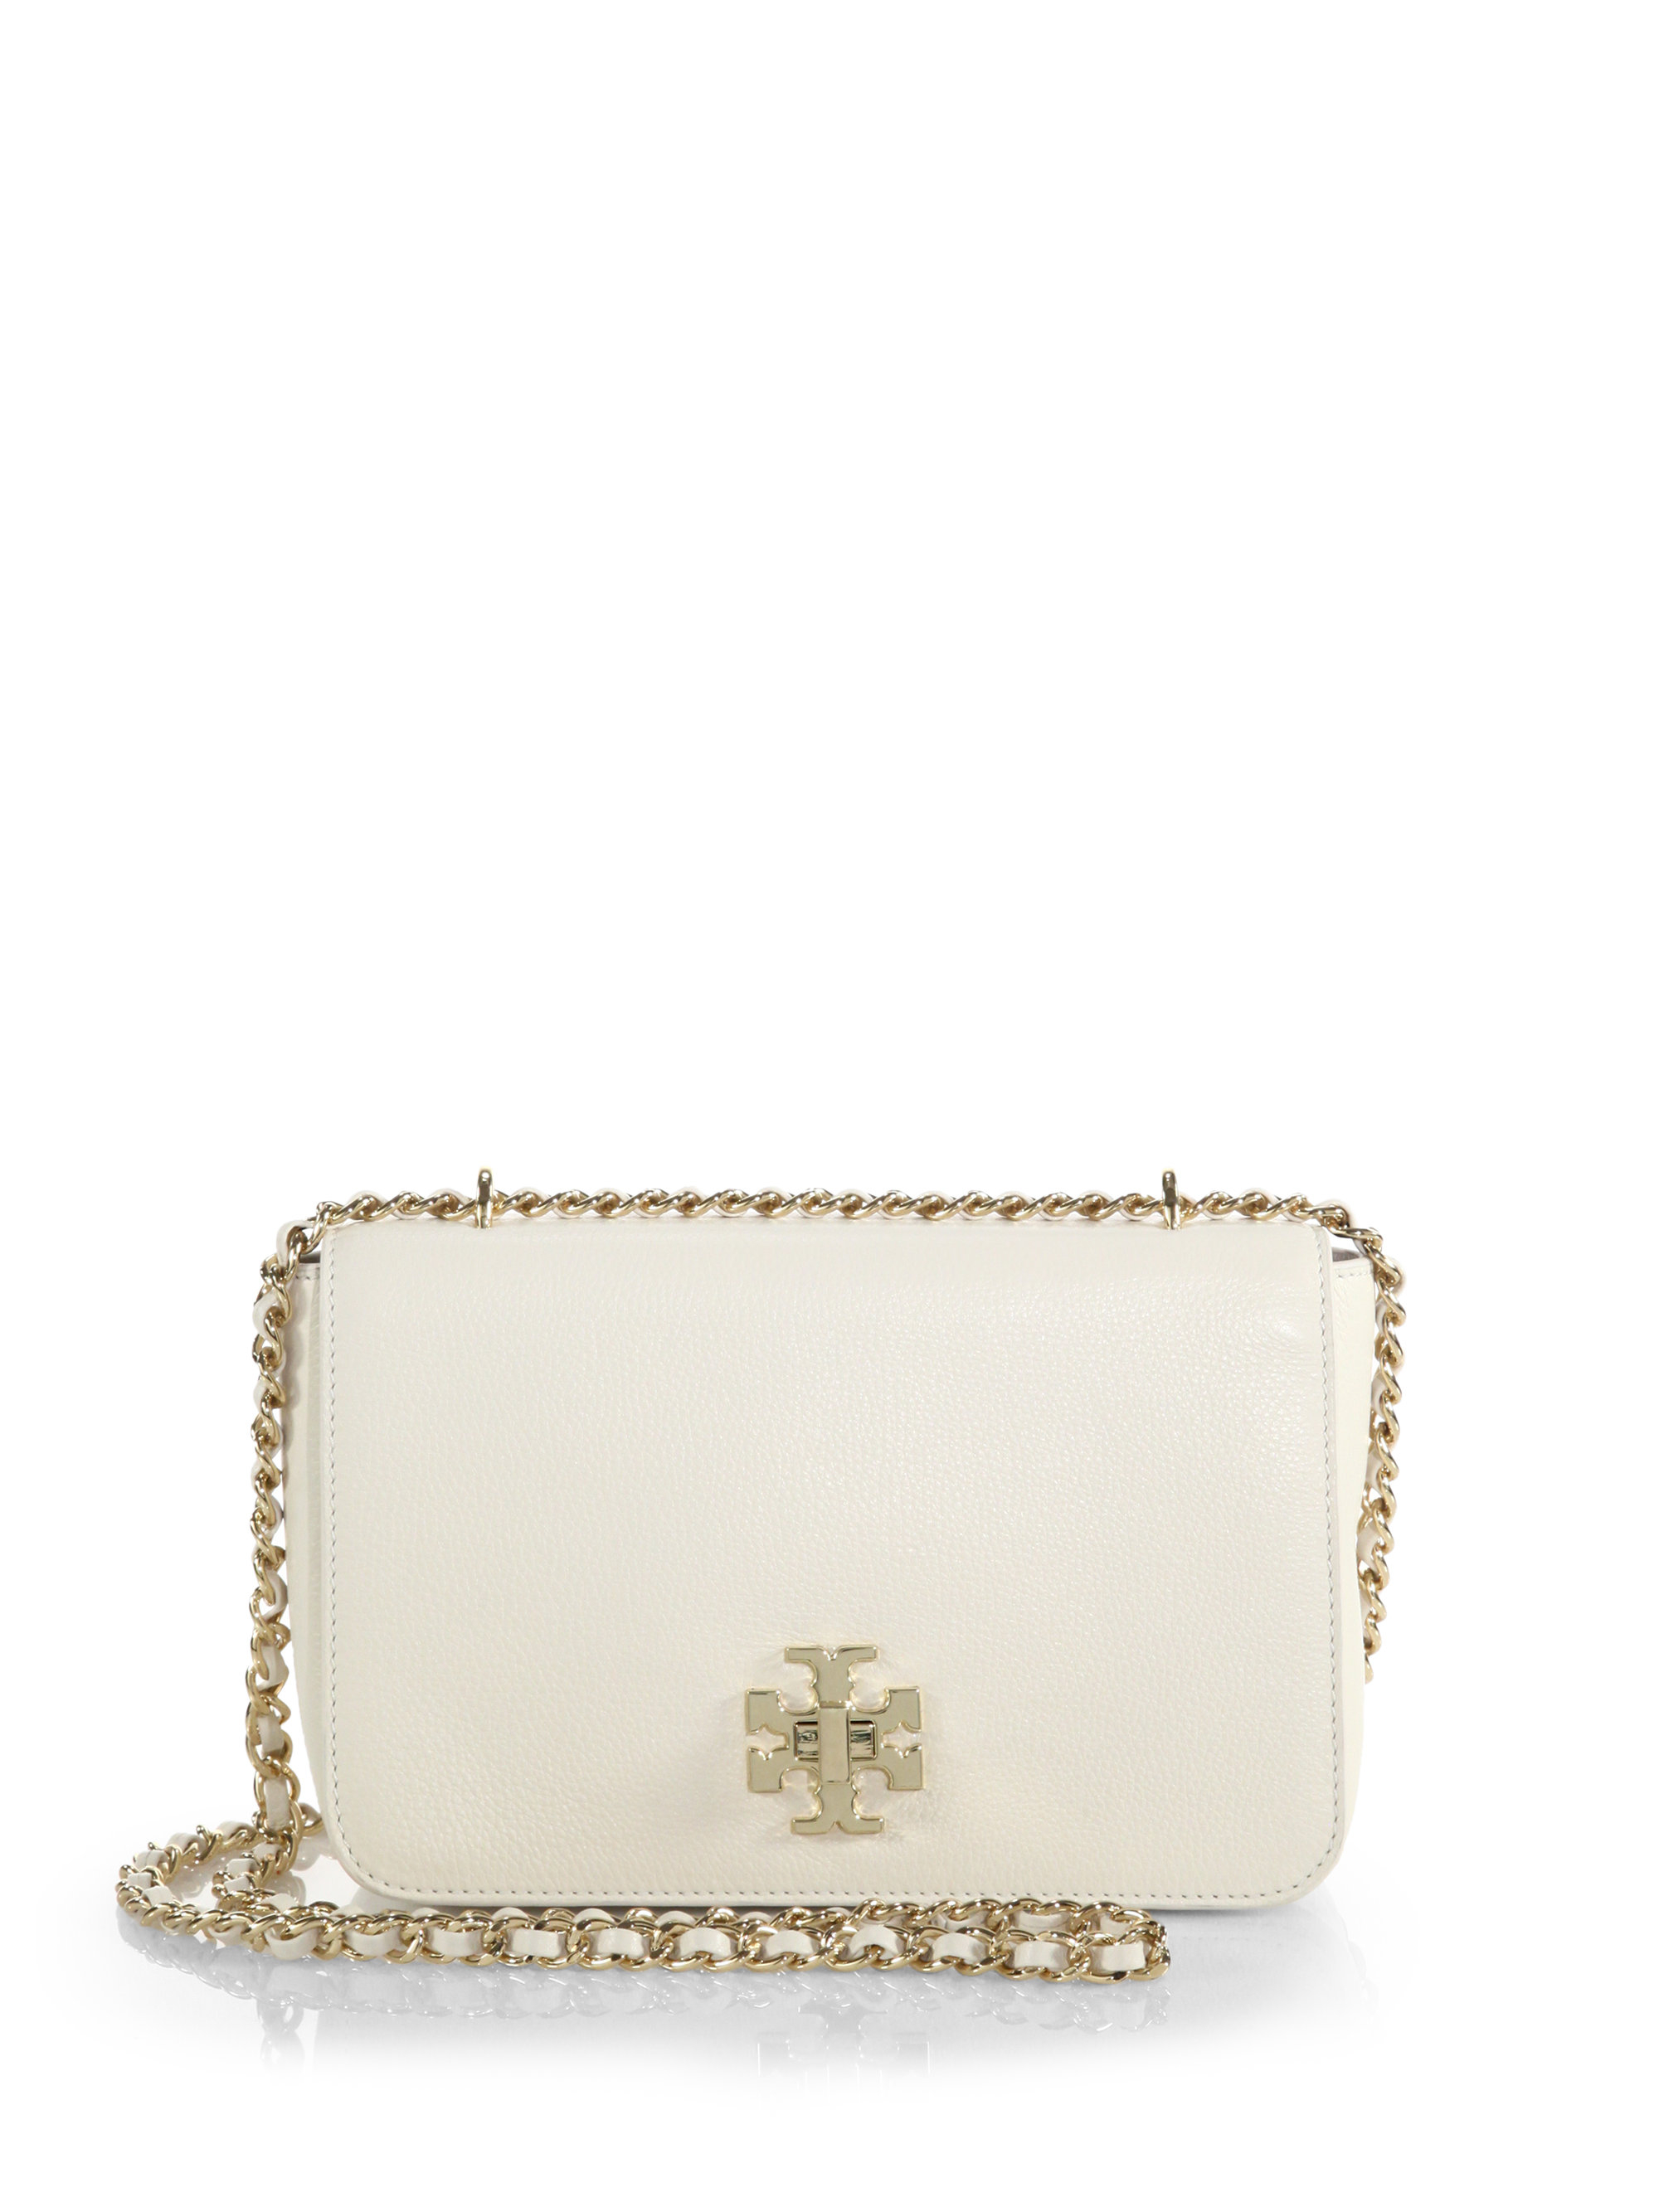 eb88ae61e Lyst - Tory Burch Mercer Pebbled-leather Chain Shoulder Bag in White